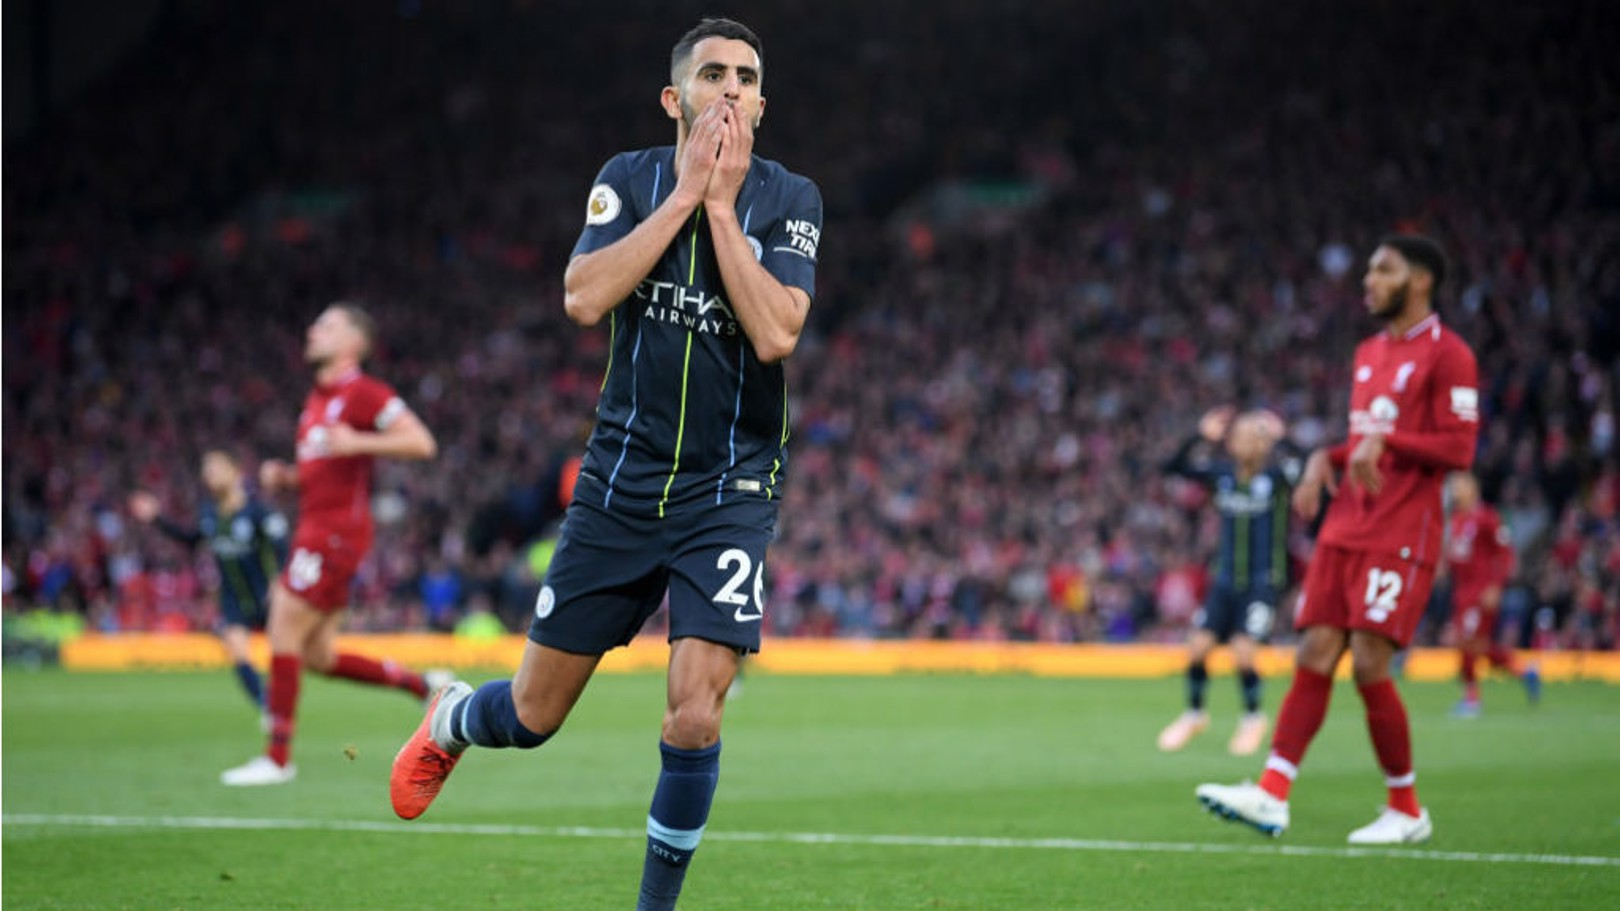 SO CLOSE: Riyad Mahrez's expression says it all after a second half shot went narrowly wide